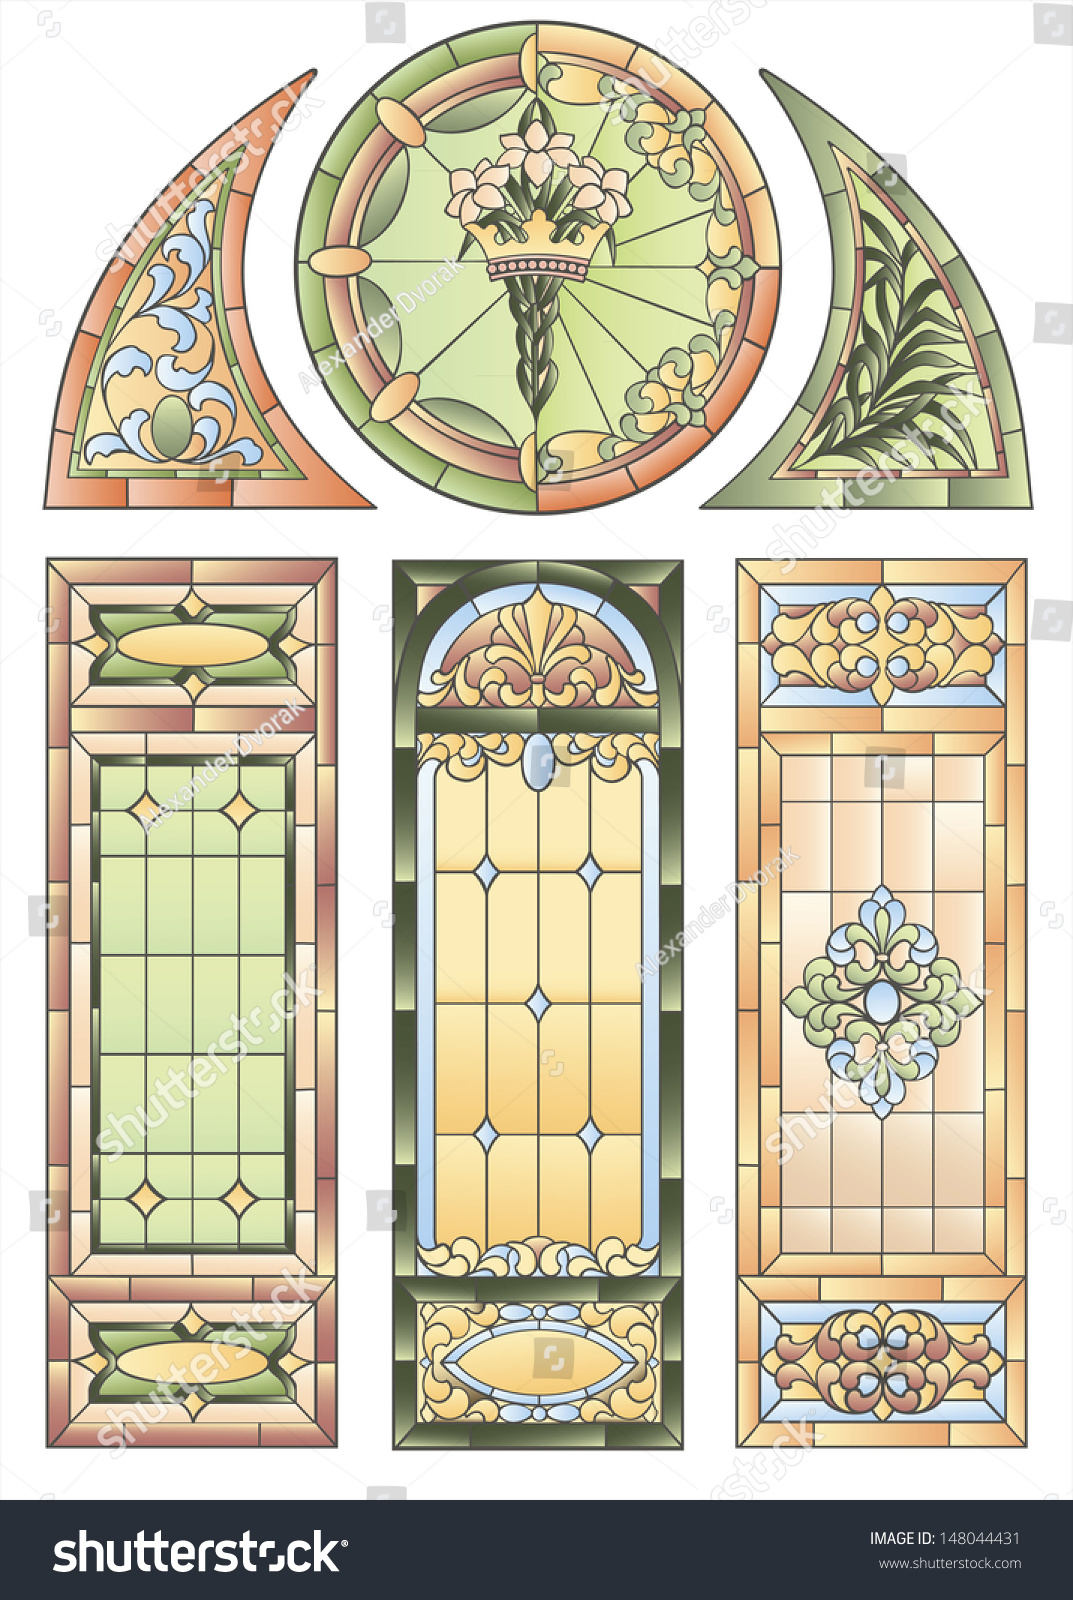 Examples Stained Glass Windows Decoration Gothic Stock Vector ...